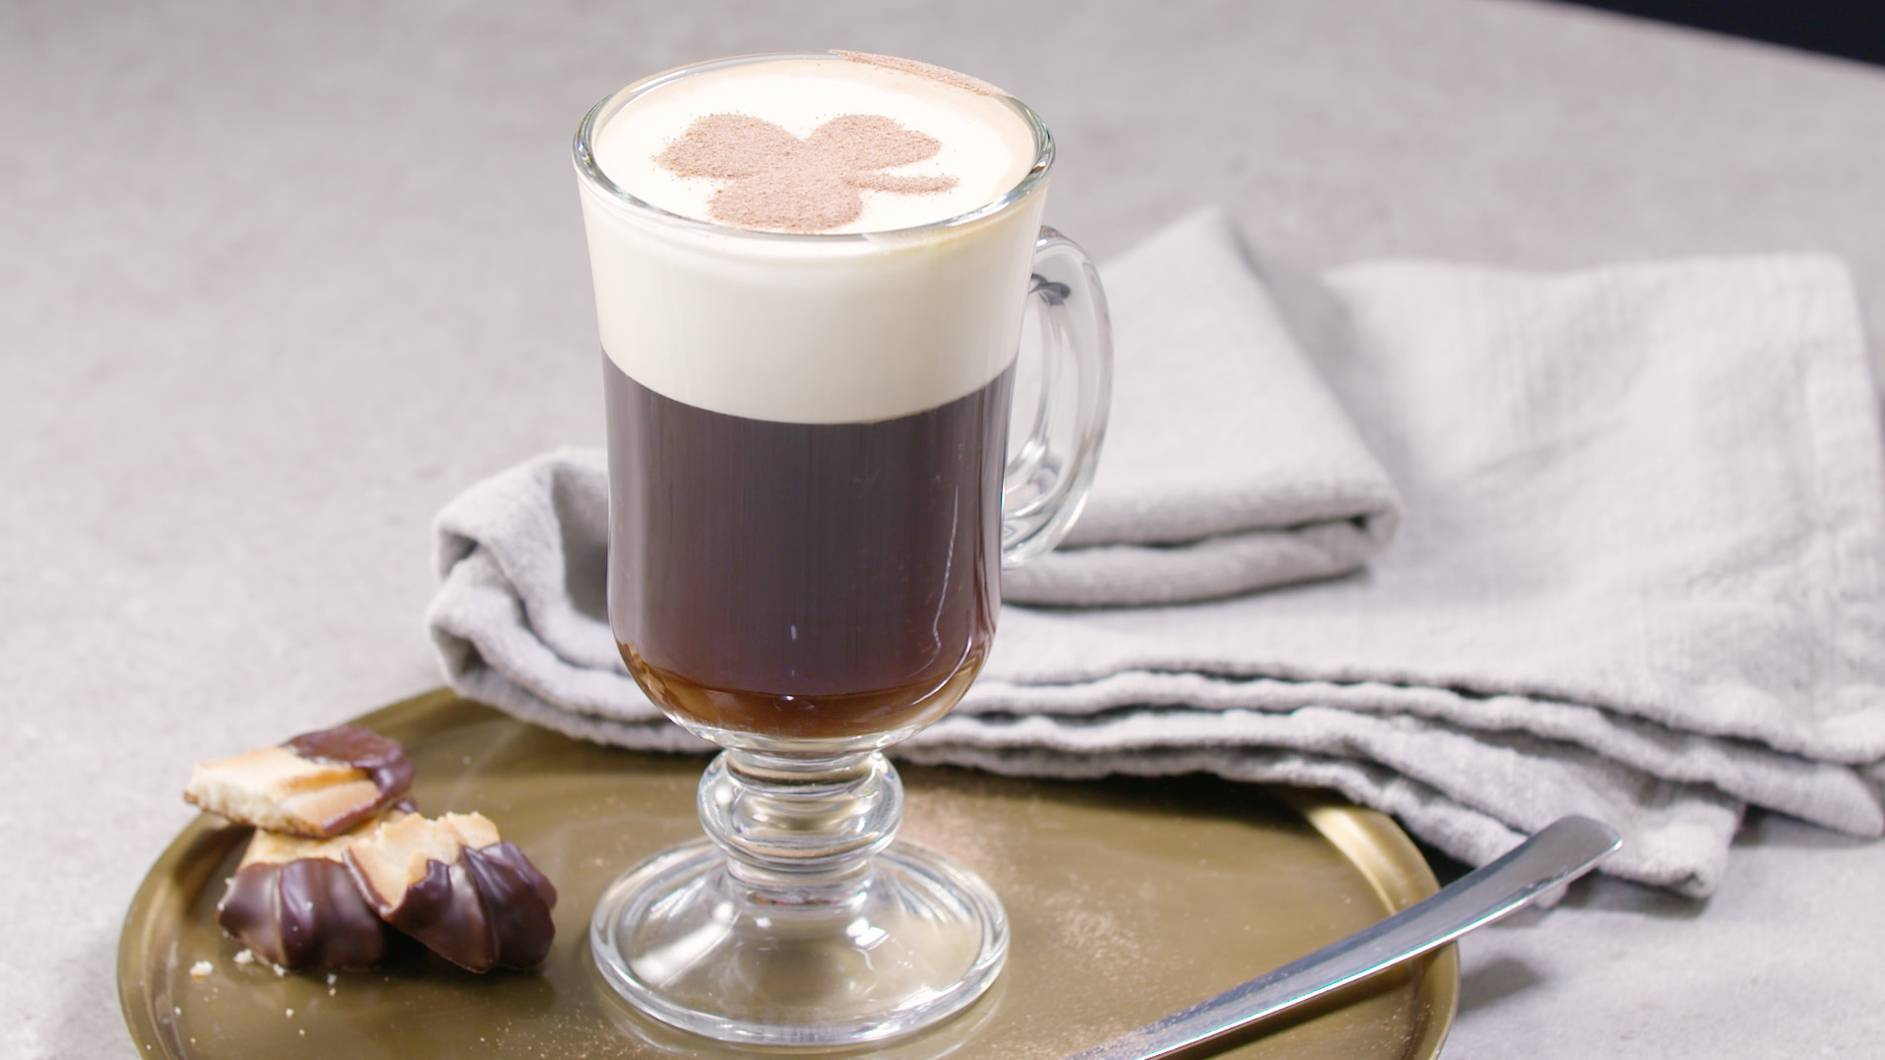 Коктейль ирландский кофеcocktail irish coffee